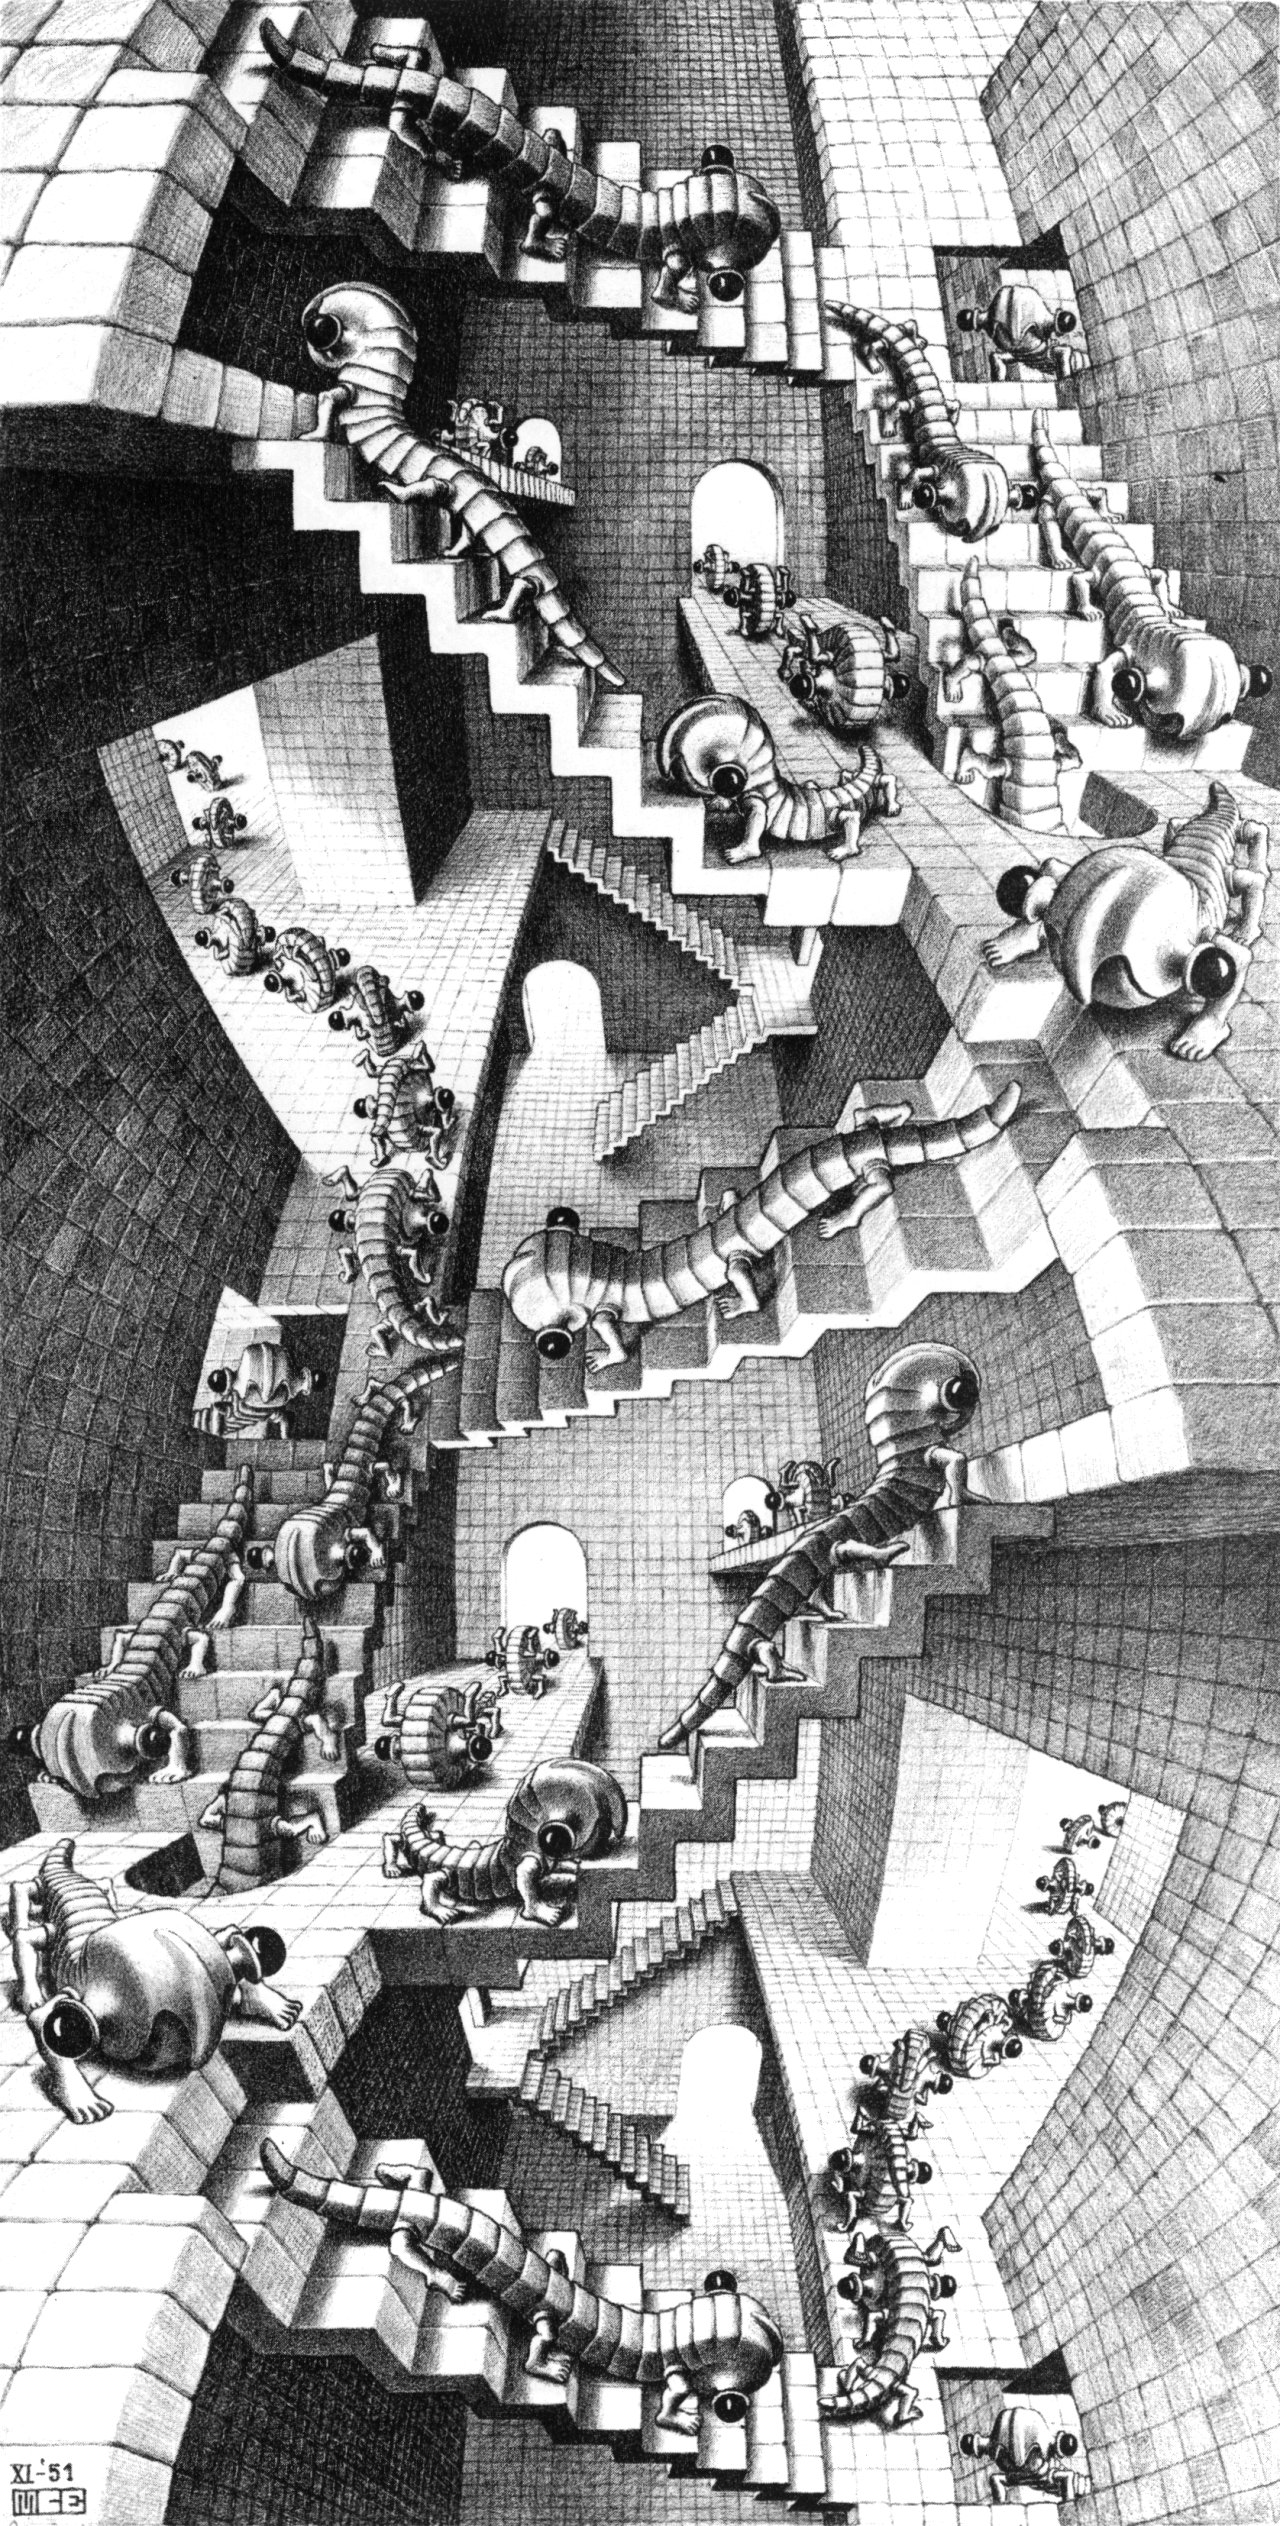 M. C. Escher (1898-1972) 'House of Stairs', 1951